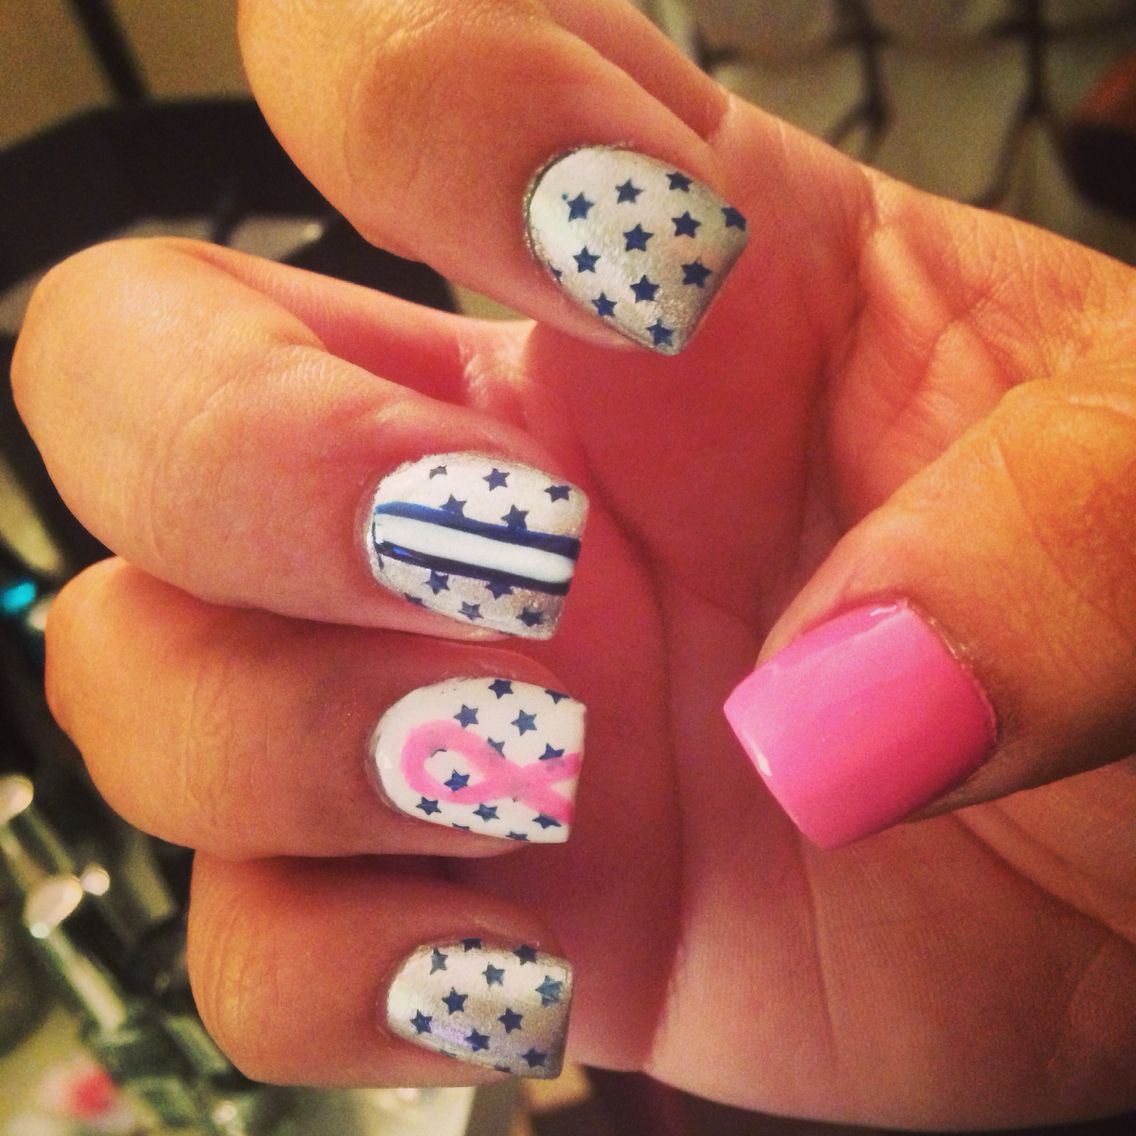 Supporting both Dallas cowboys and breast cancer awareness ...